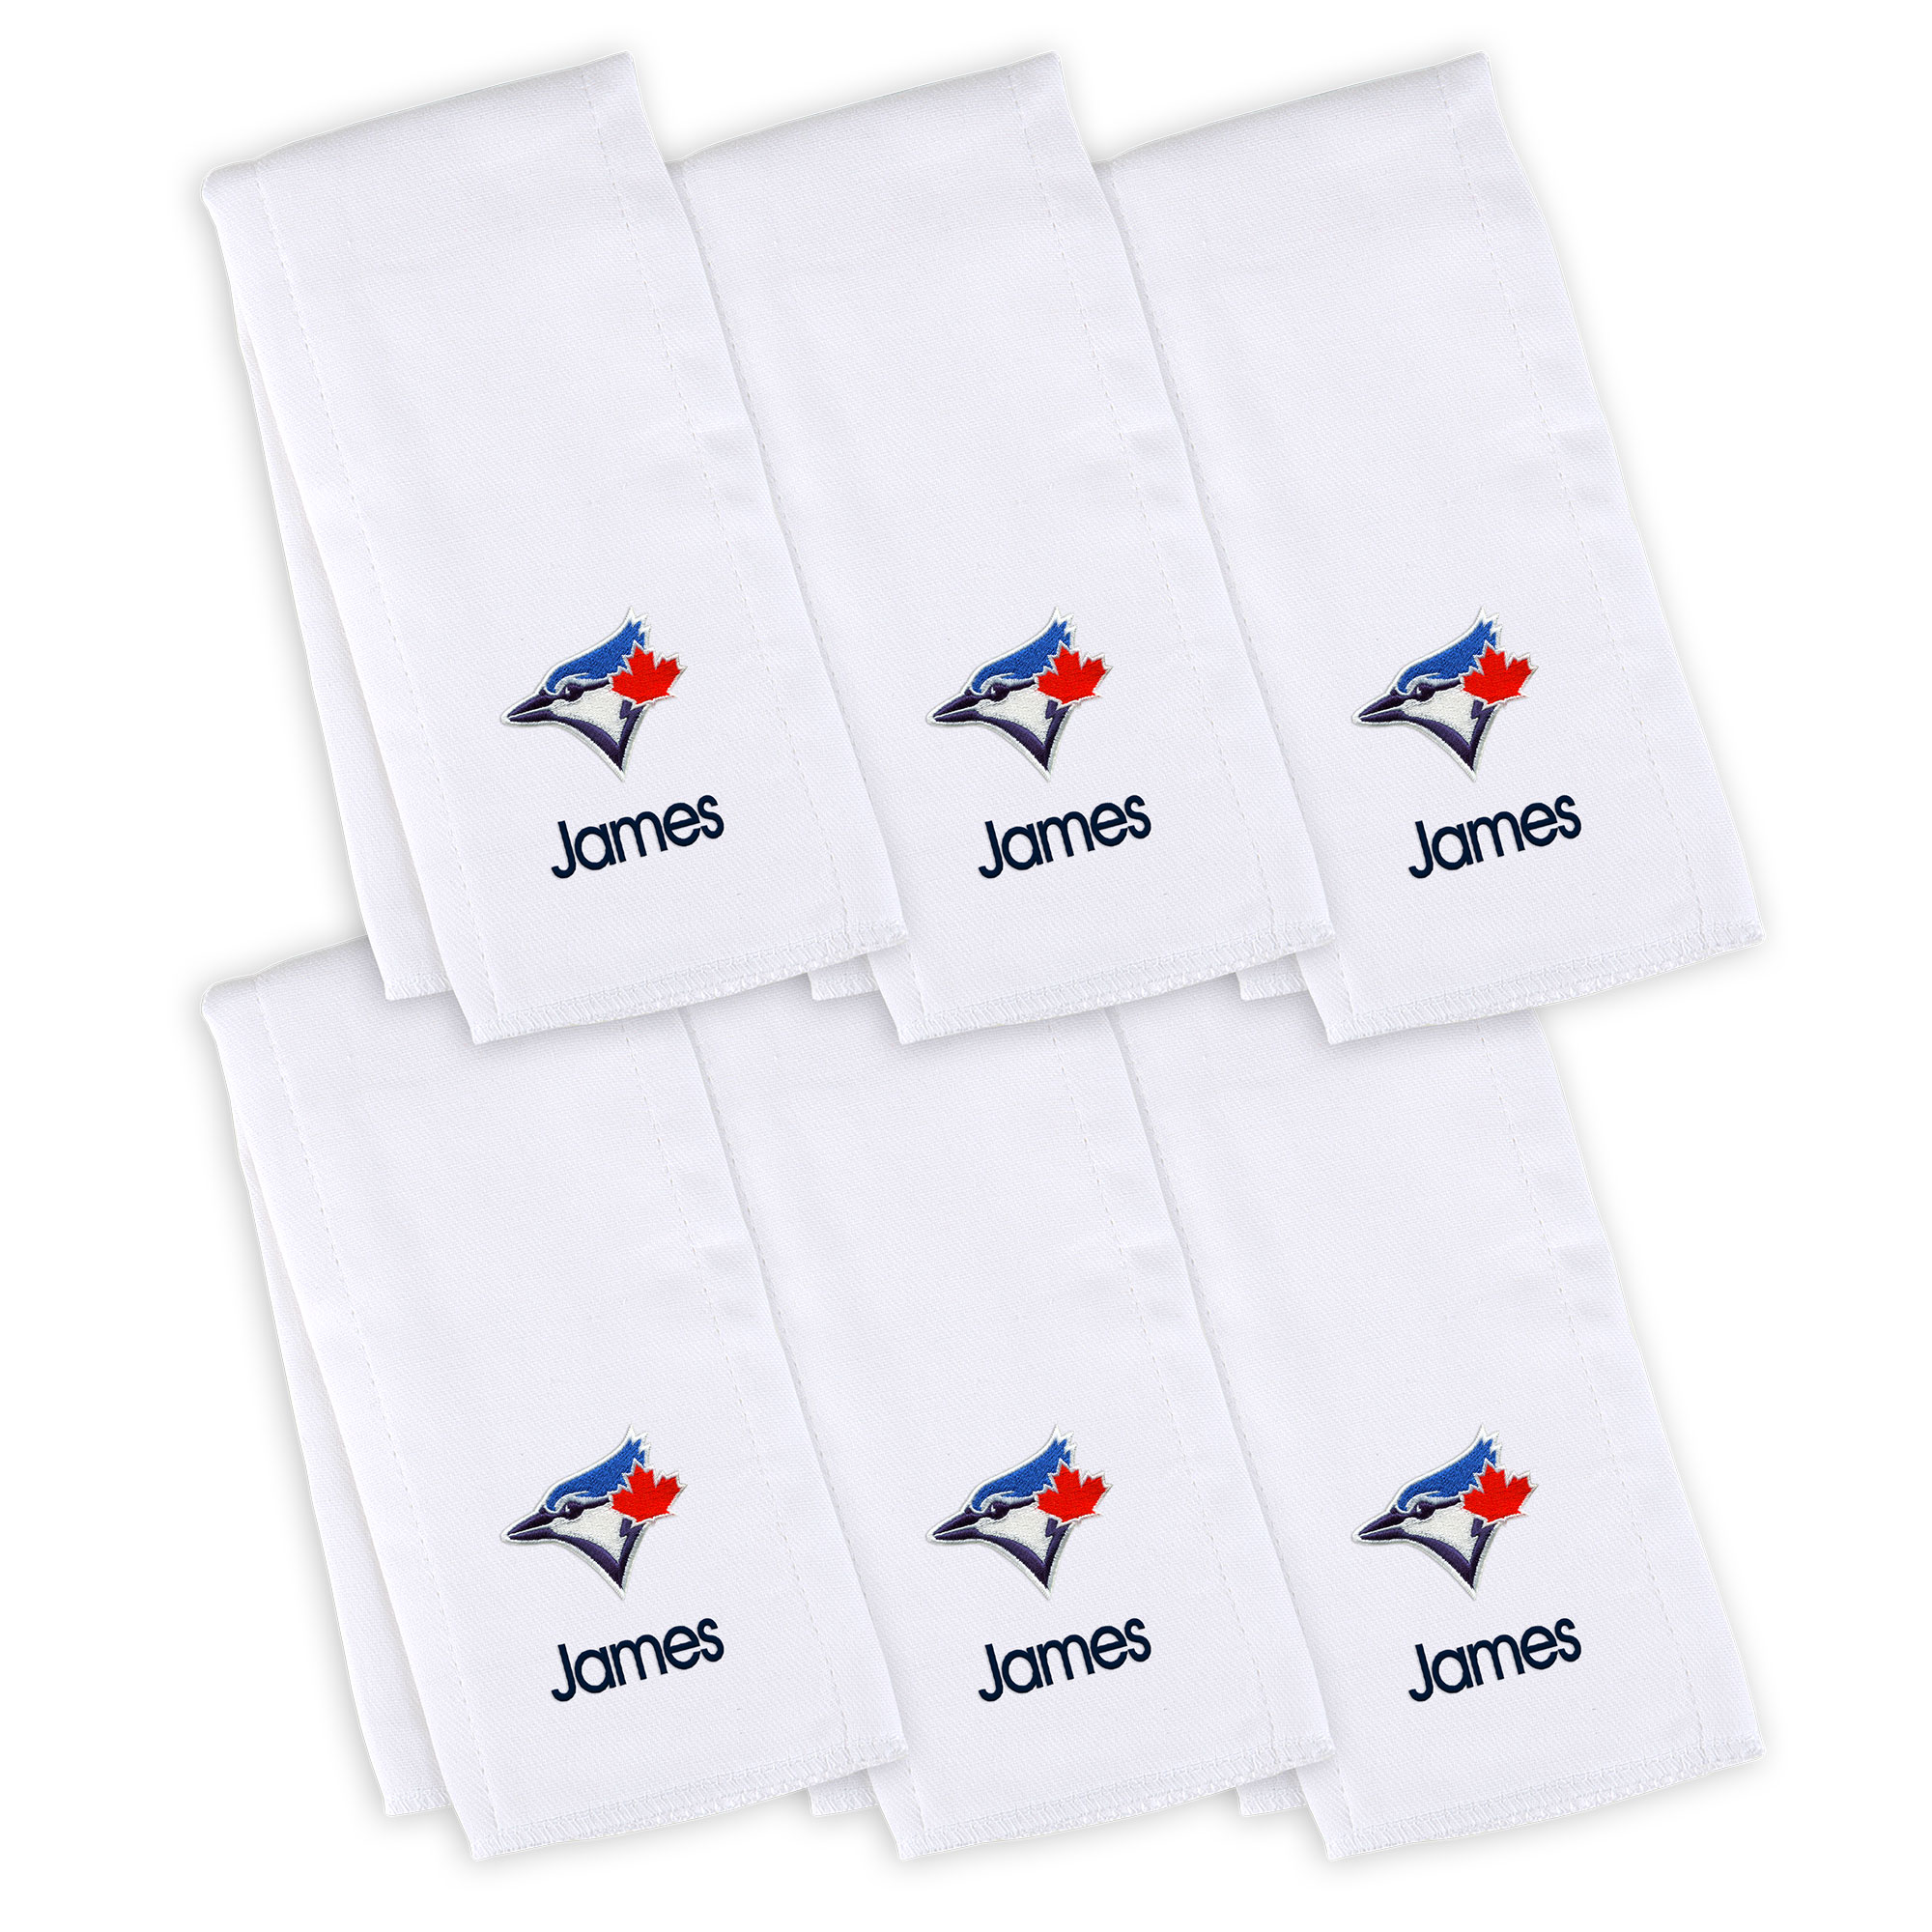 Toronto Blue Jays Infant Personalized Burp Cloth 6-Pack - White